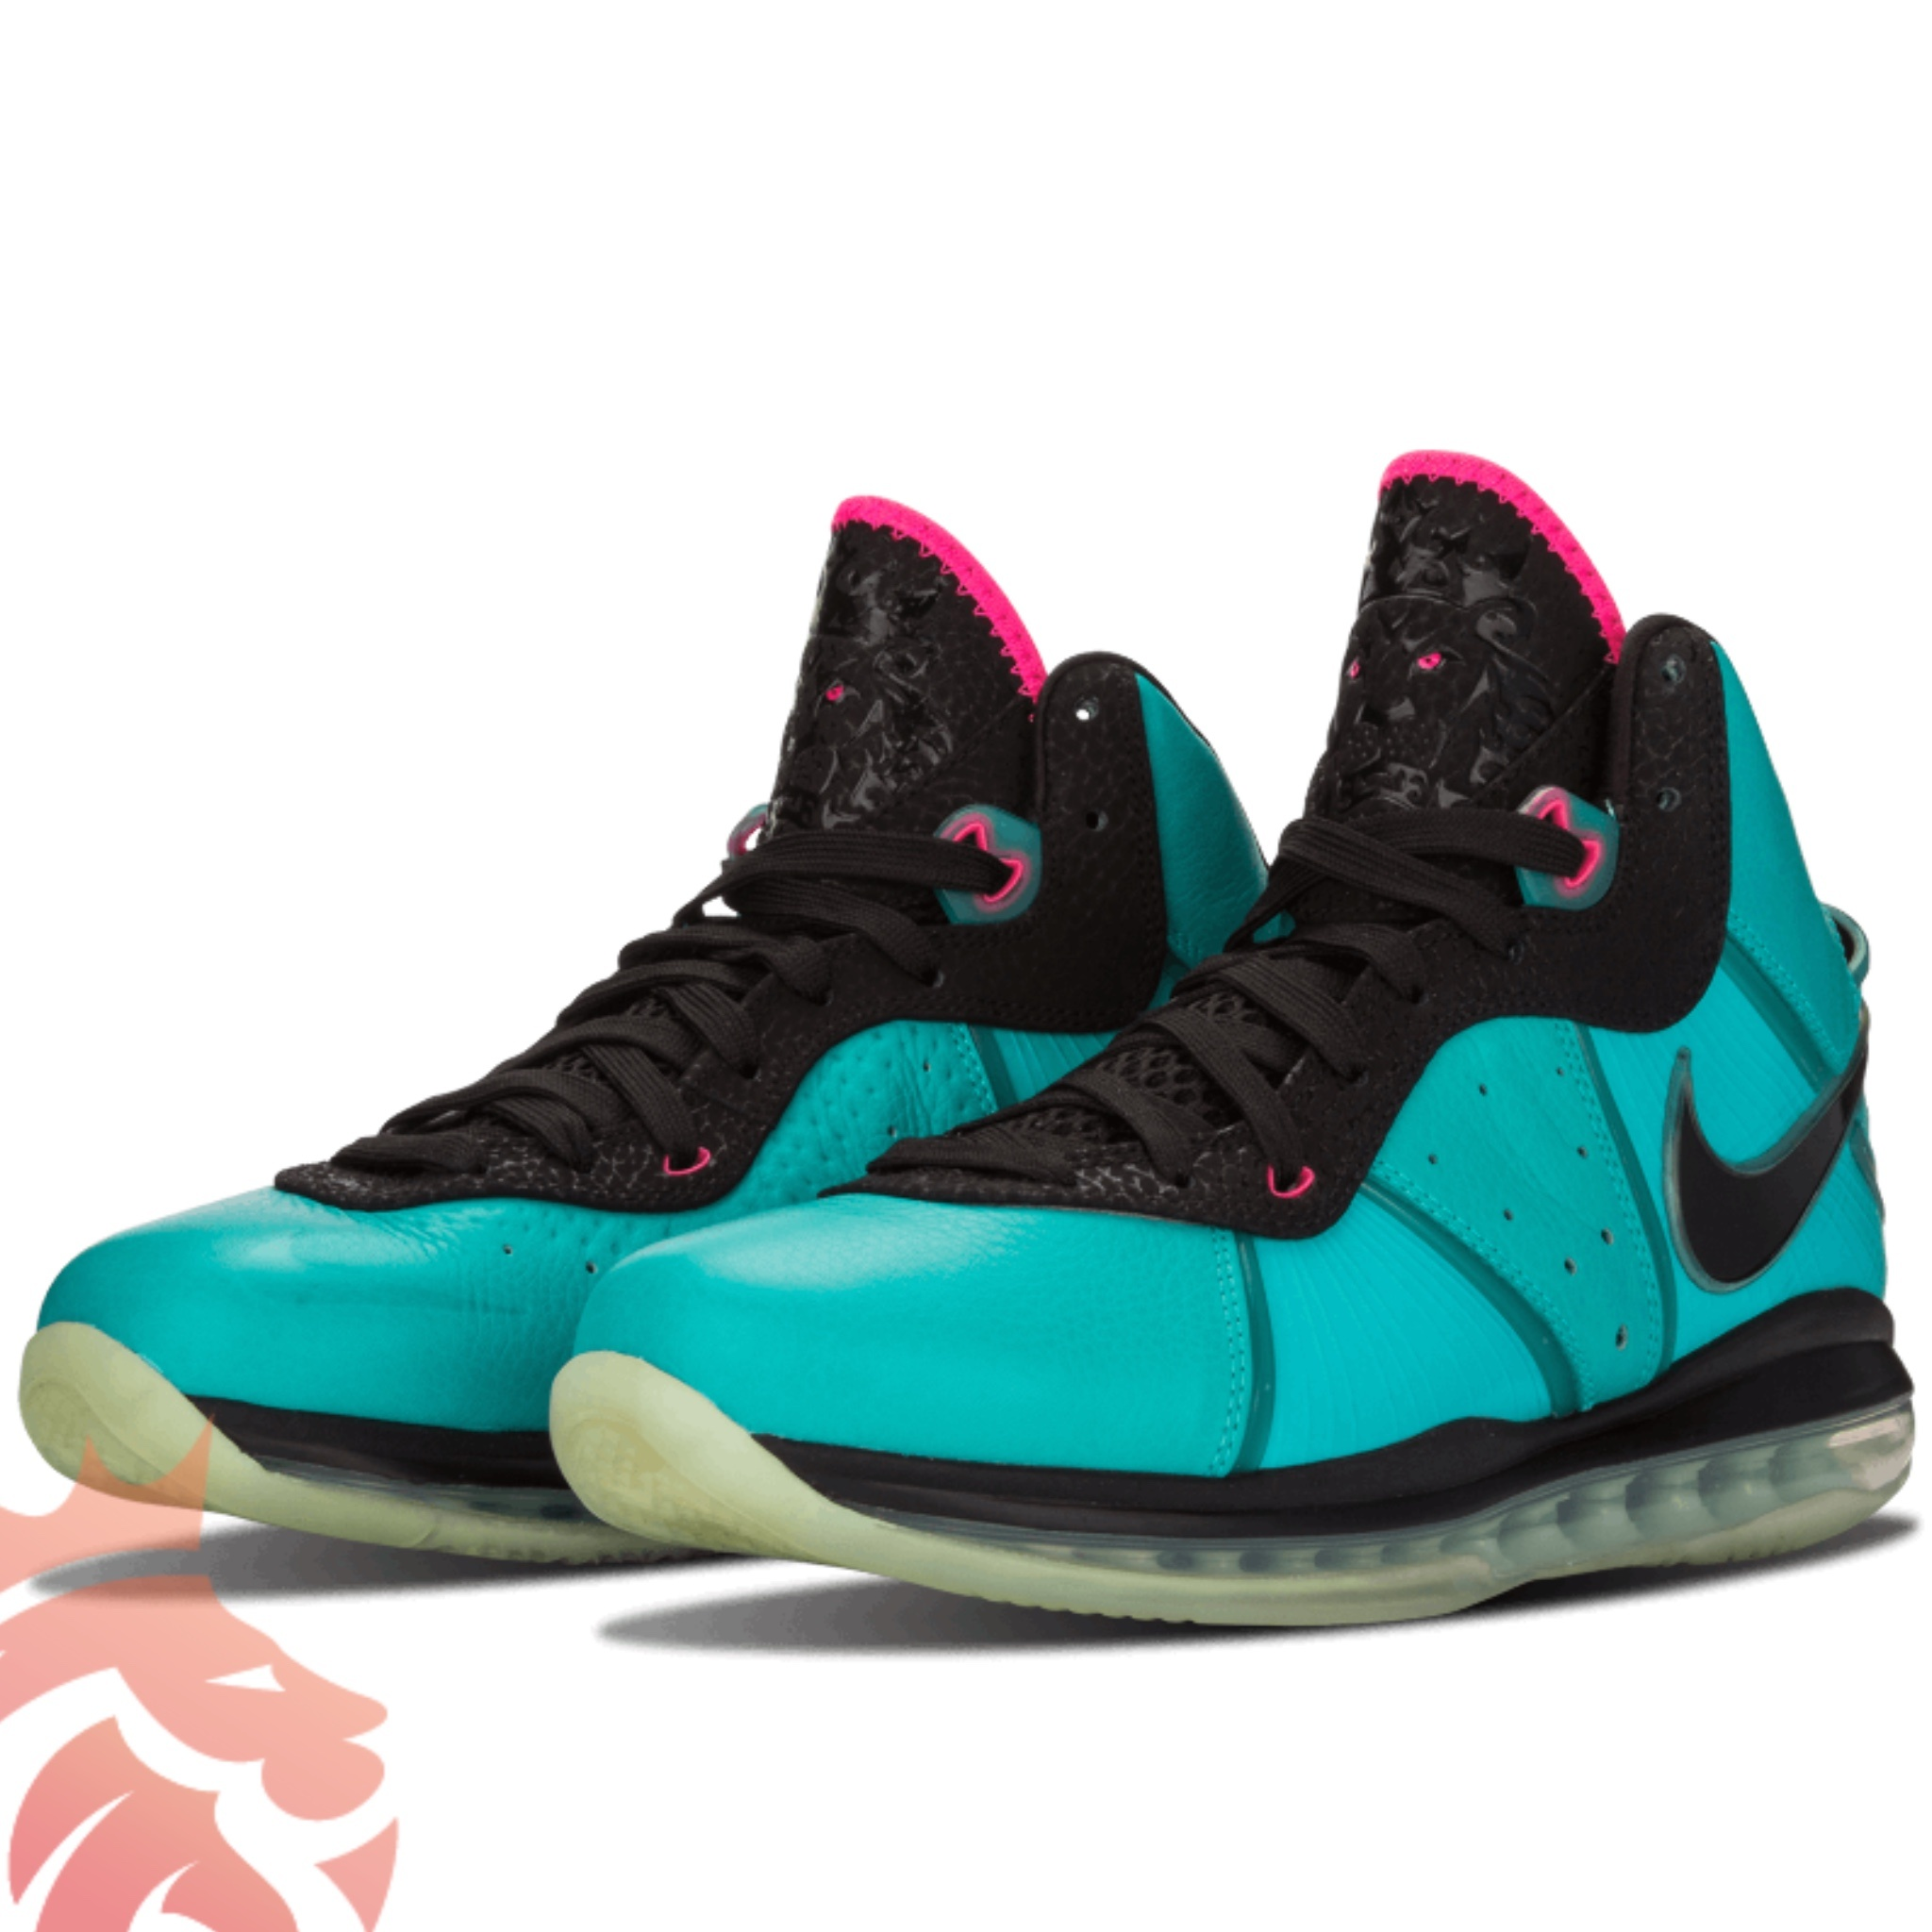 Nike LeBron 8 South Beach Z0328-400 Retro/Pink Flash-Filament Green-Black